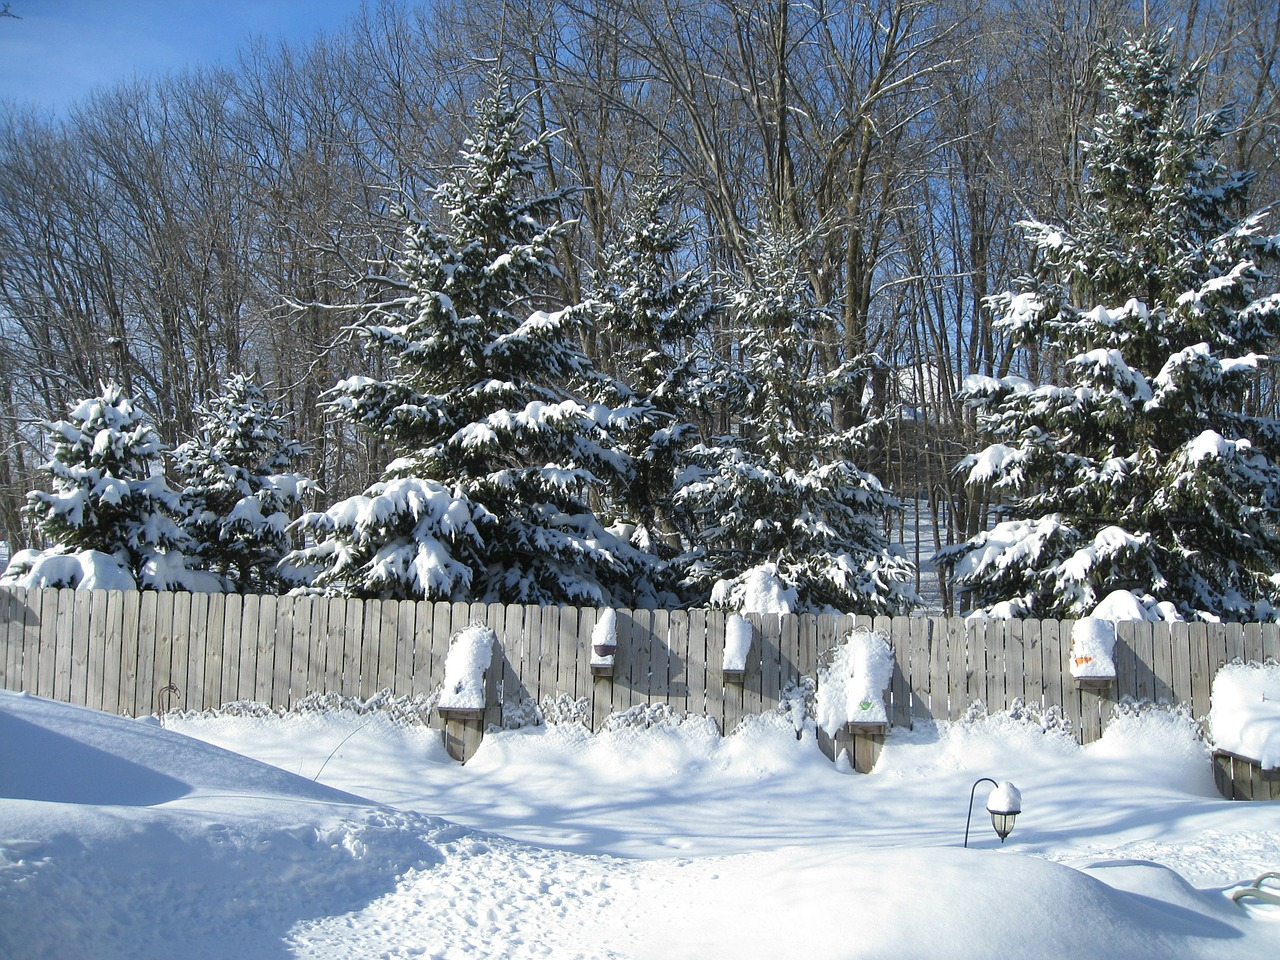 fence,woods,season,white,cold,ice,snow,winter,frost,snowy,frozen,outdoor,weather,snowfall,cool,frosty,snowstorm,blizzard,snow-storm,free pictures, free photos, free images, royalty free, free illustrations, public domain